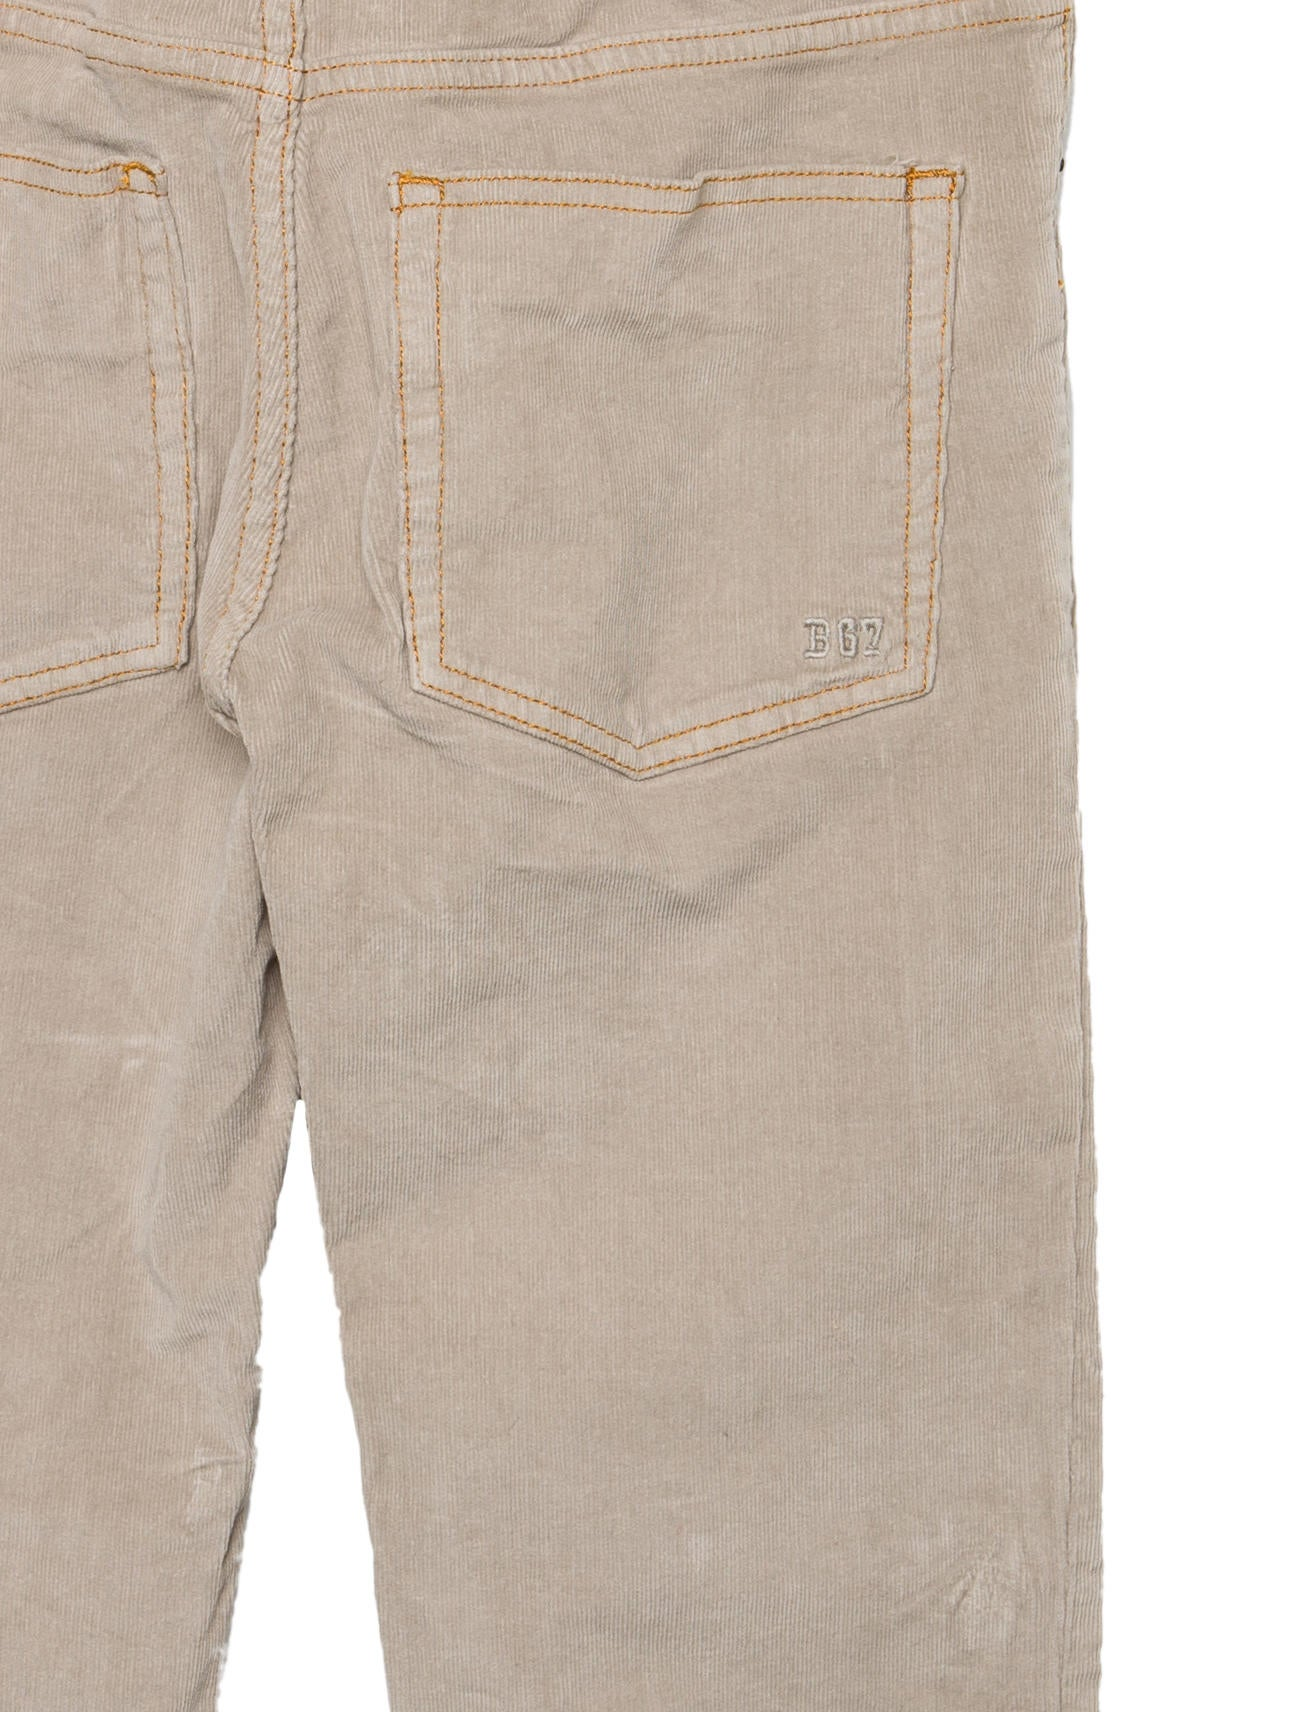 At the Gap, we have a large selection of some of the coolest boys trousers to be found anywhere. For a great look and quality design, you can't beat our boys pants.